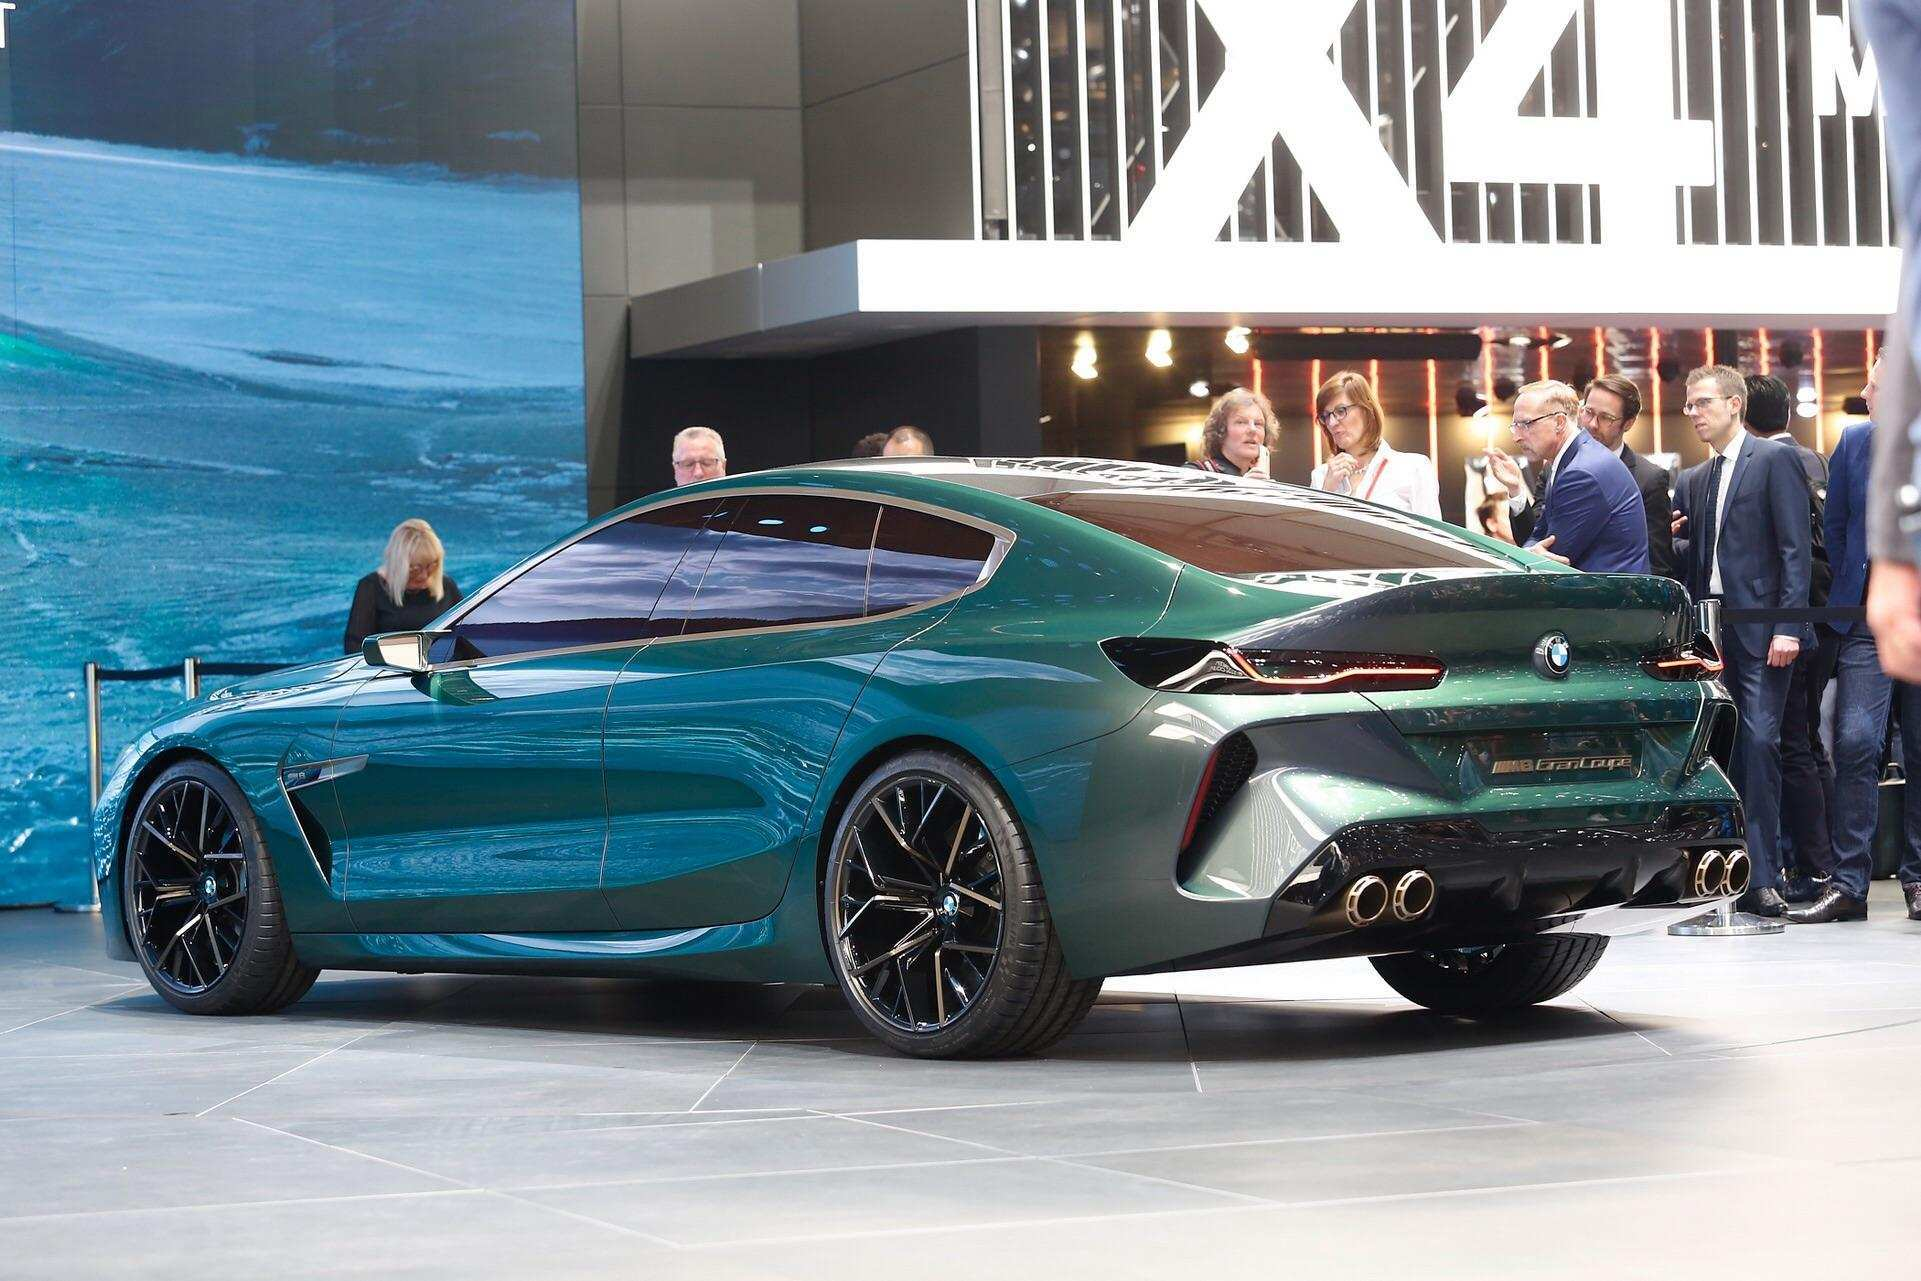 76 All New 2019 BMW M8 Concept